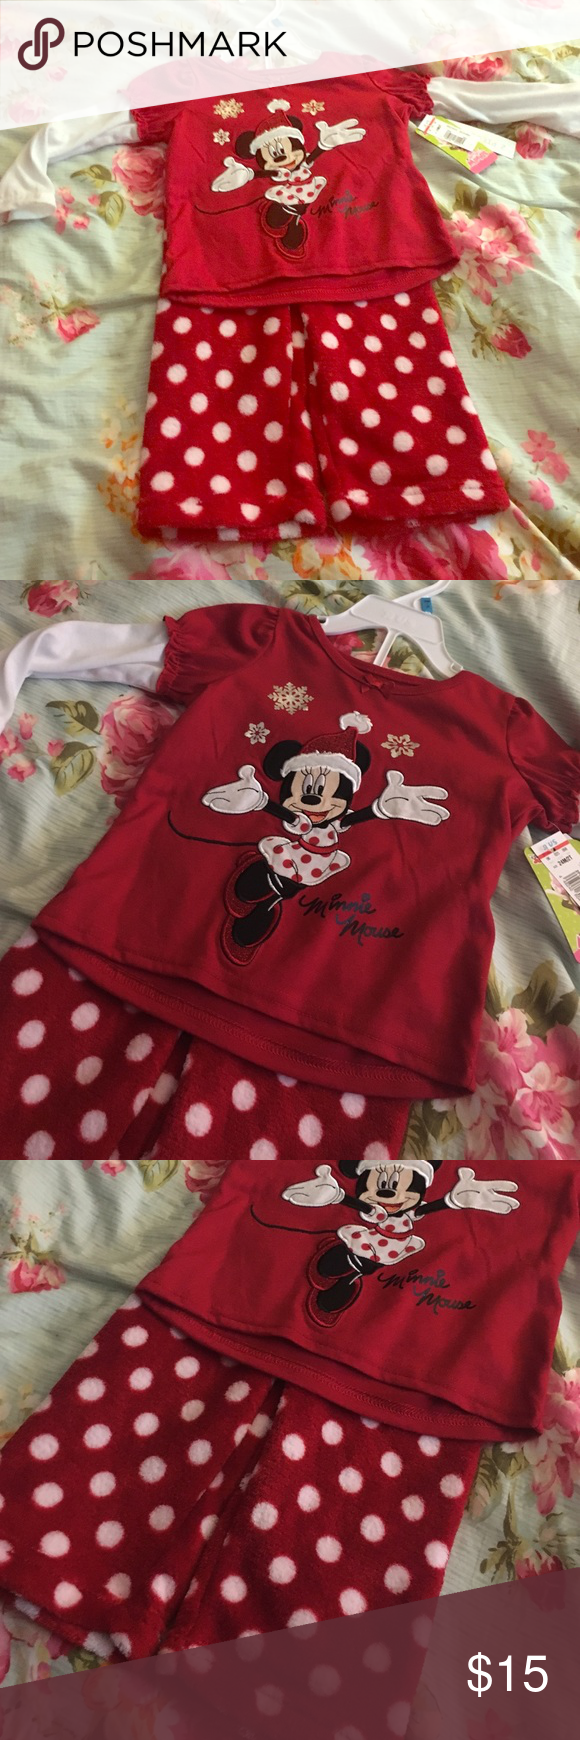 Christmas is coming! Christmas is coming! Comfy Holiday Outfit. New with tags; never warn! Disney Matching Sets